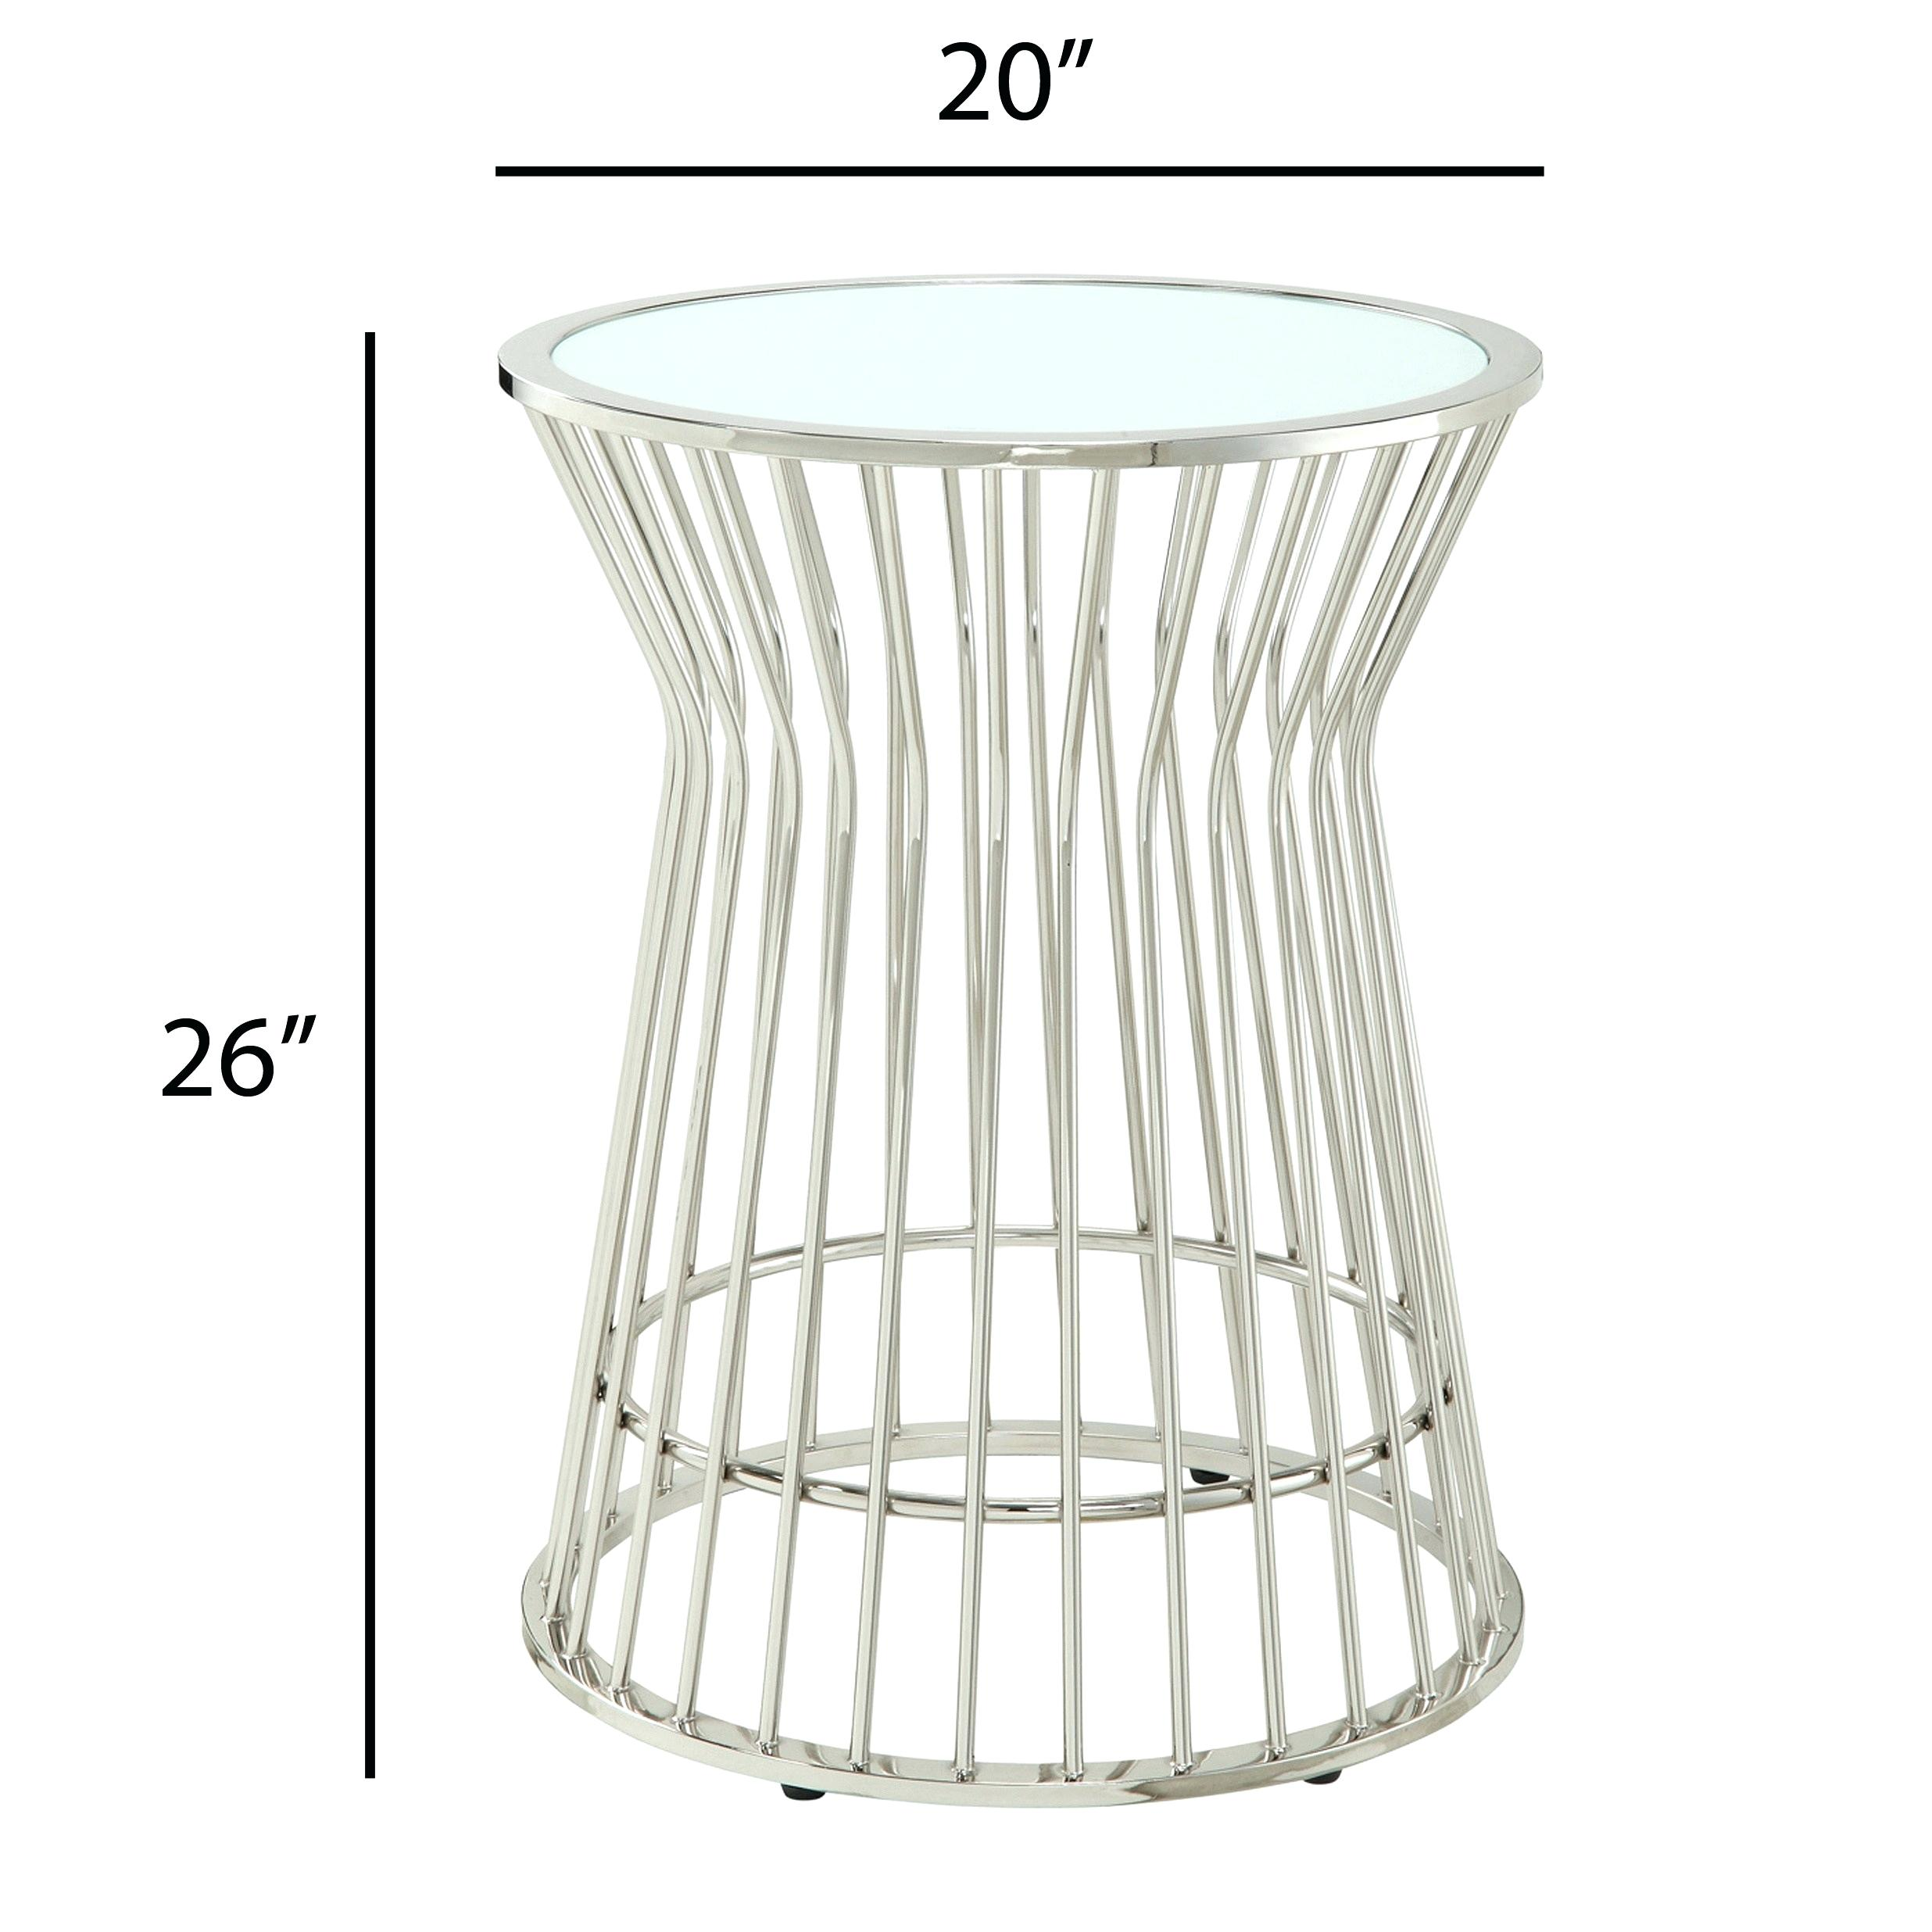 drum accent table manila cylinder brass metal side silver storage project target long thin wooden patio with umbrella hole wood pedestal end rectangular garage door threshold